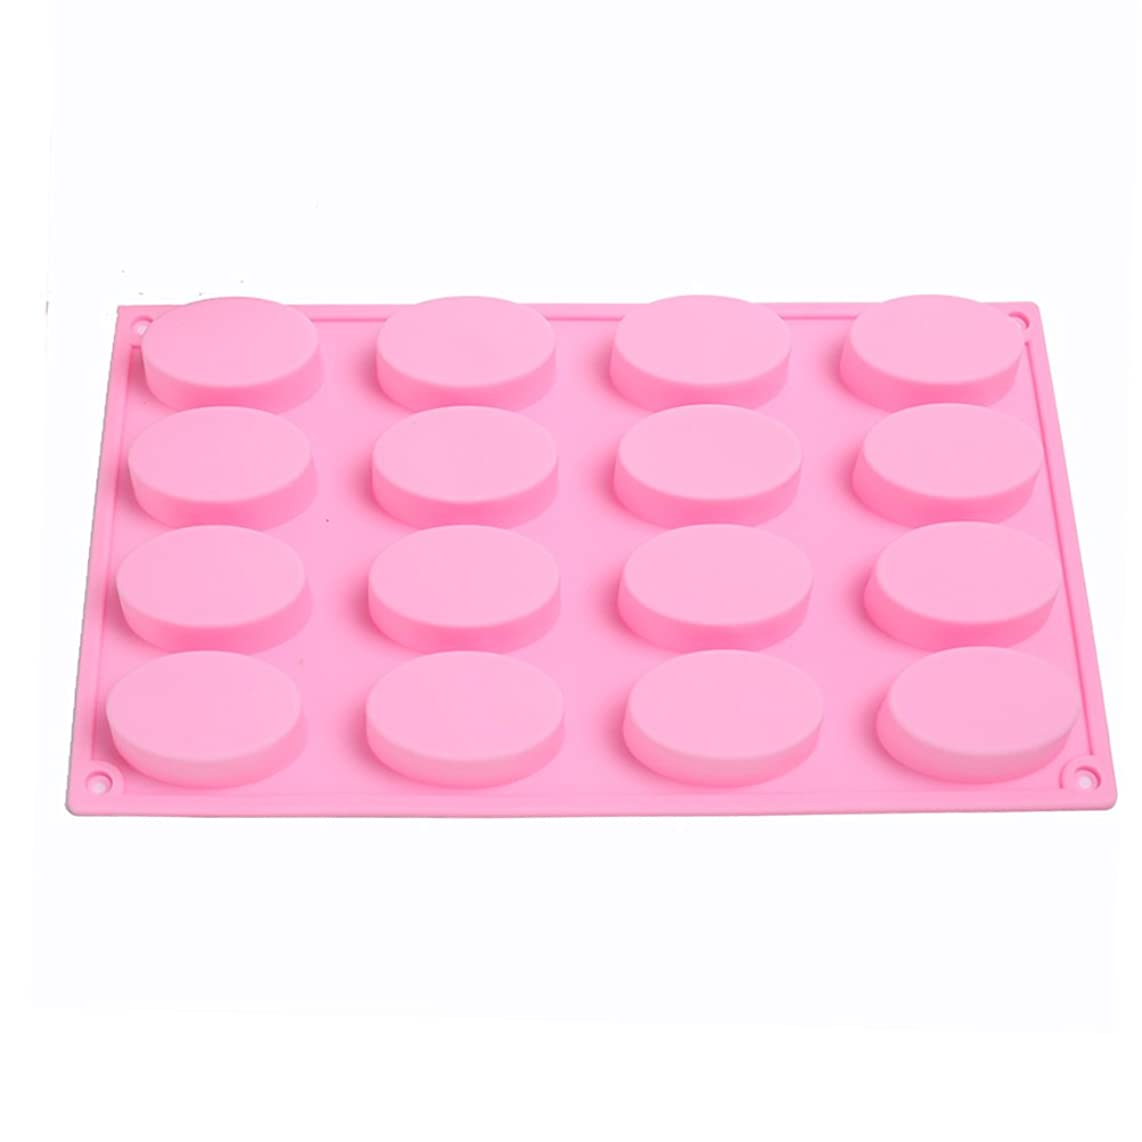 KALAIEN 16 Oval Cavities Chocolate Candy Maker Silicone Mold Cake Baking Mold Muffin Cup